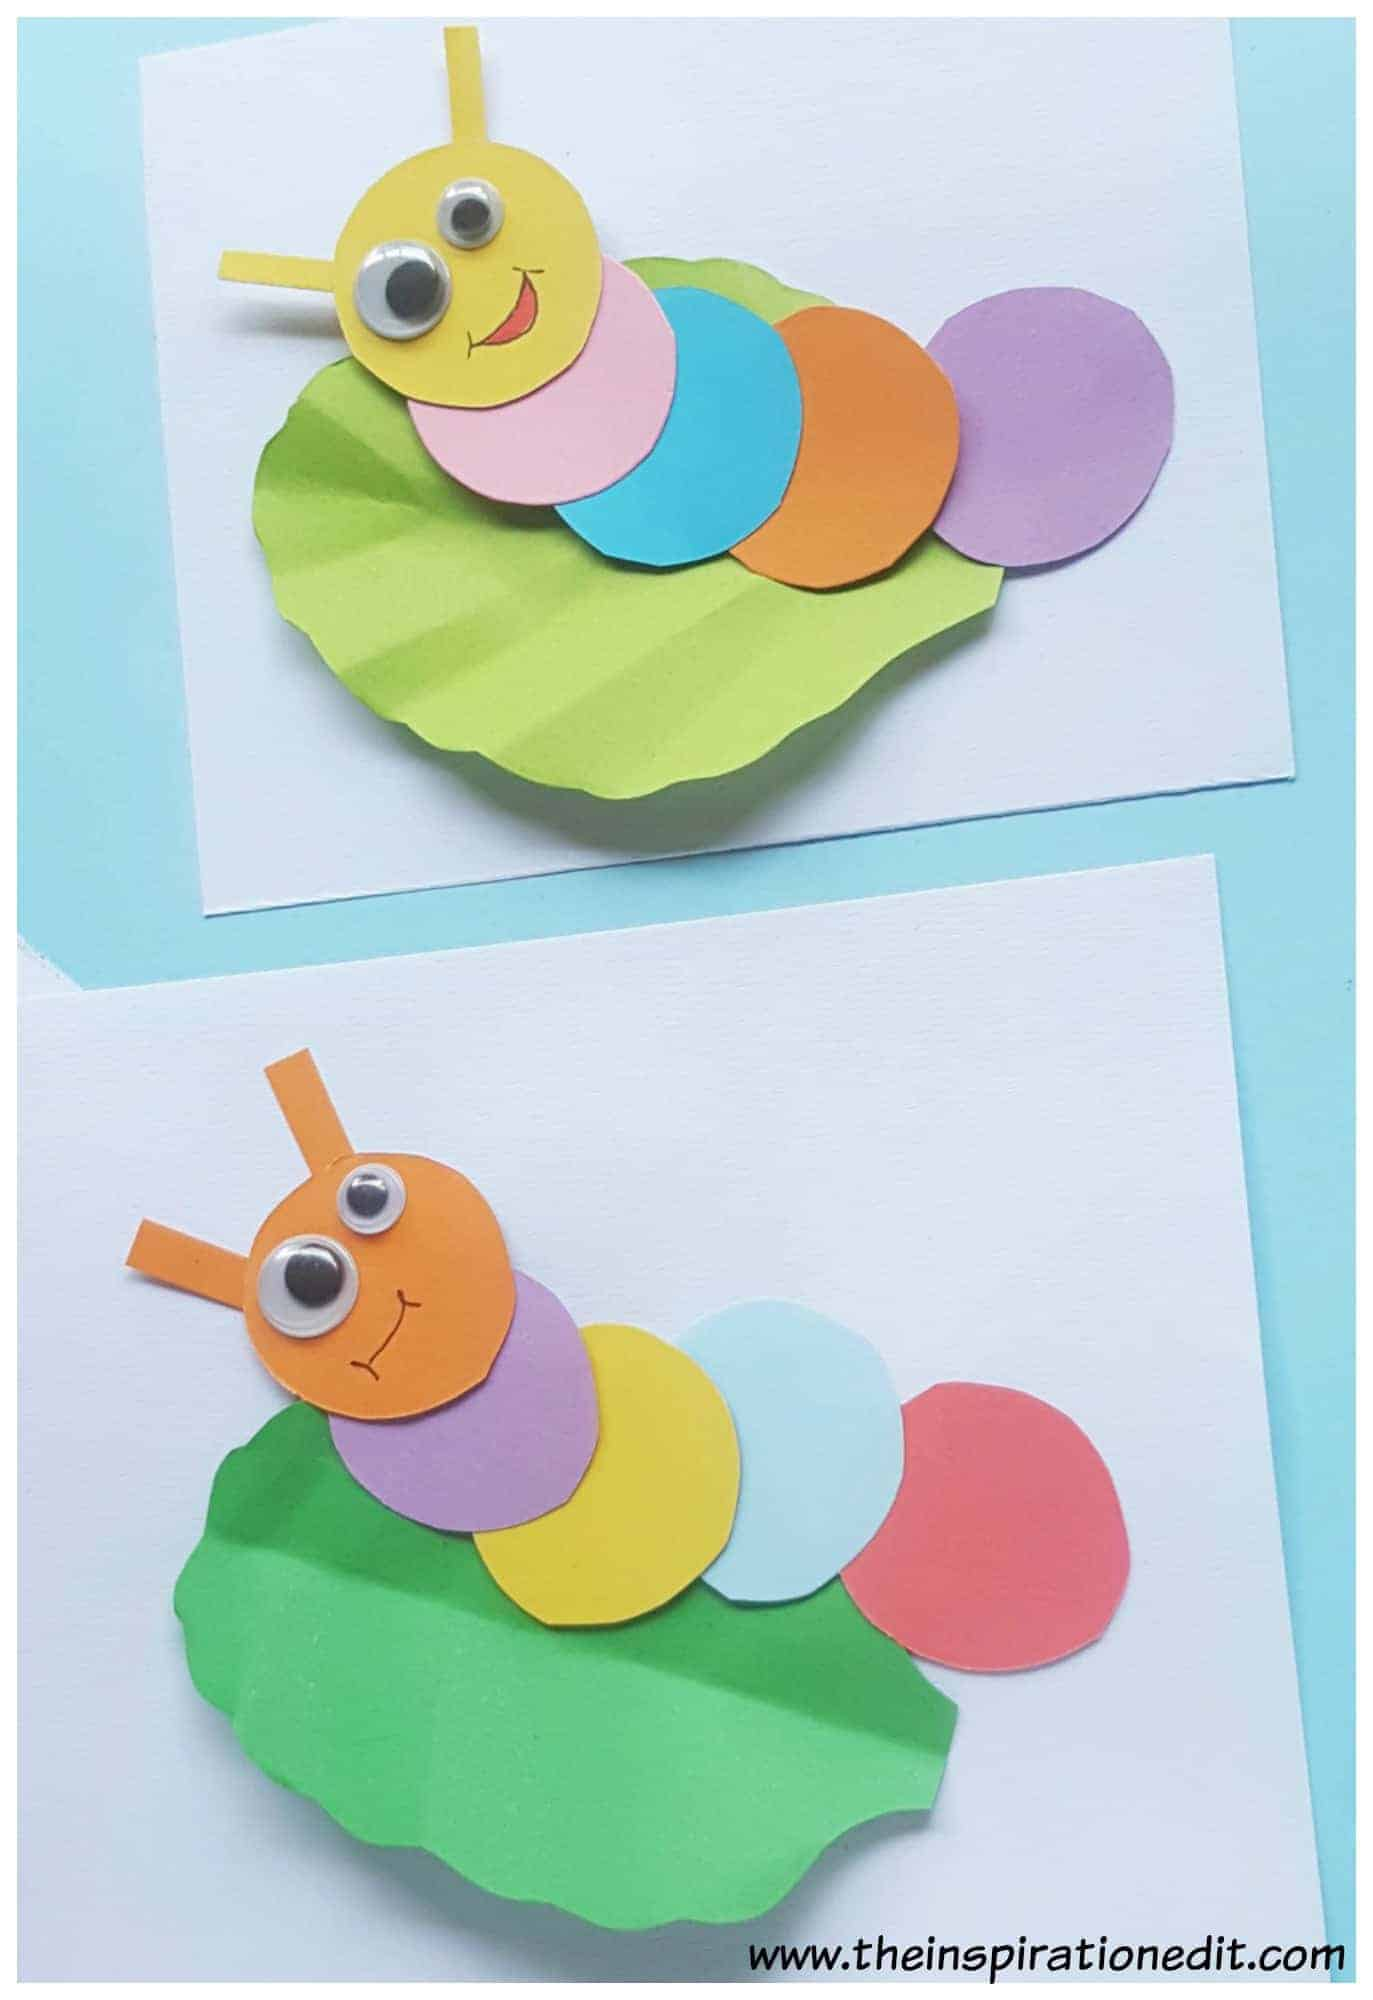 Finished Paper Caterpillar Craft